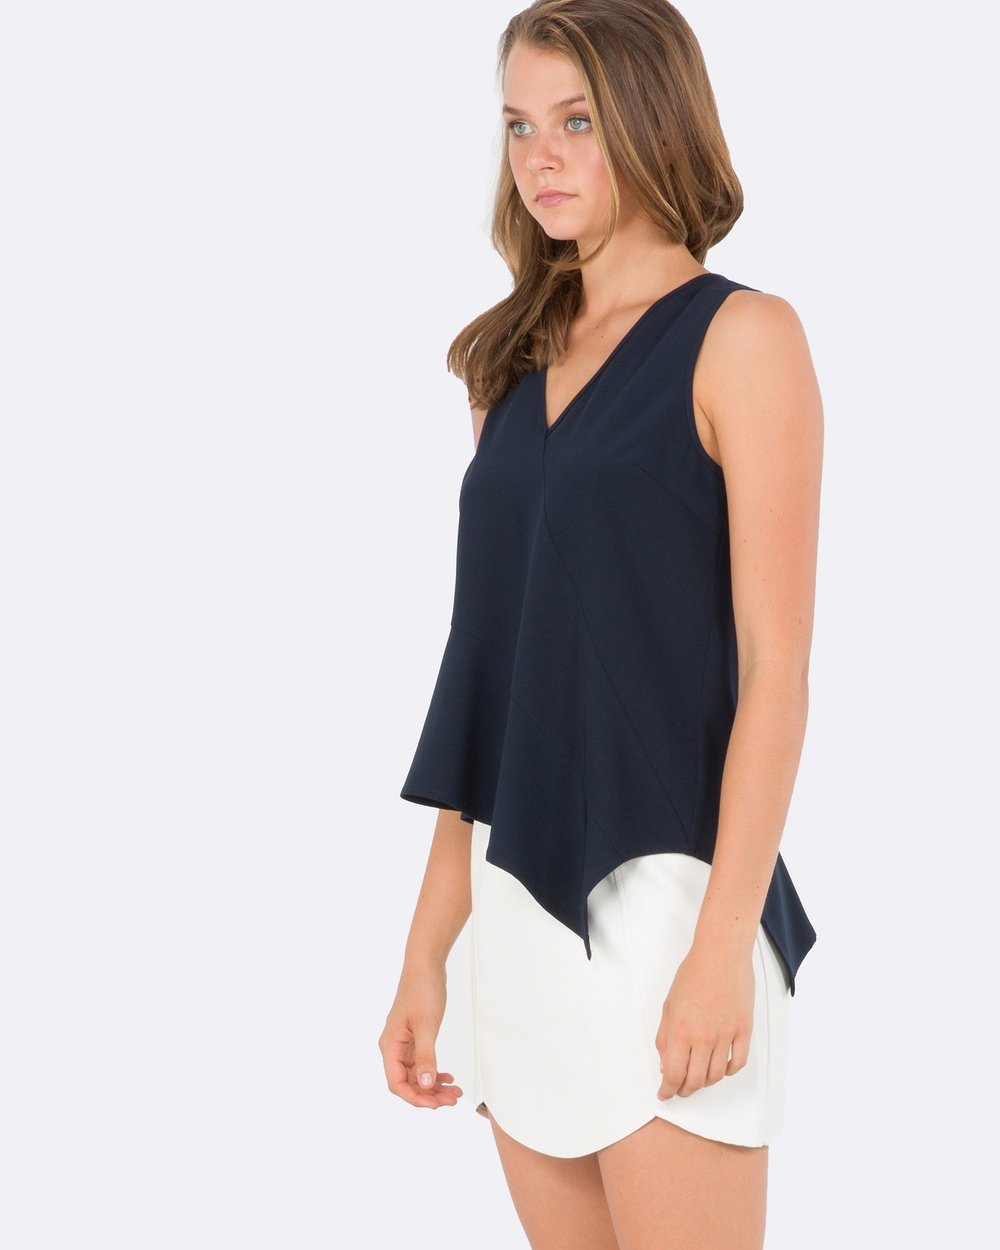 Amelius Magnet Top Tops Navy Magnet Top